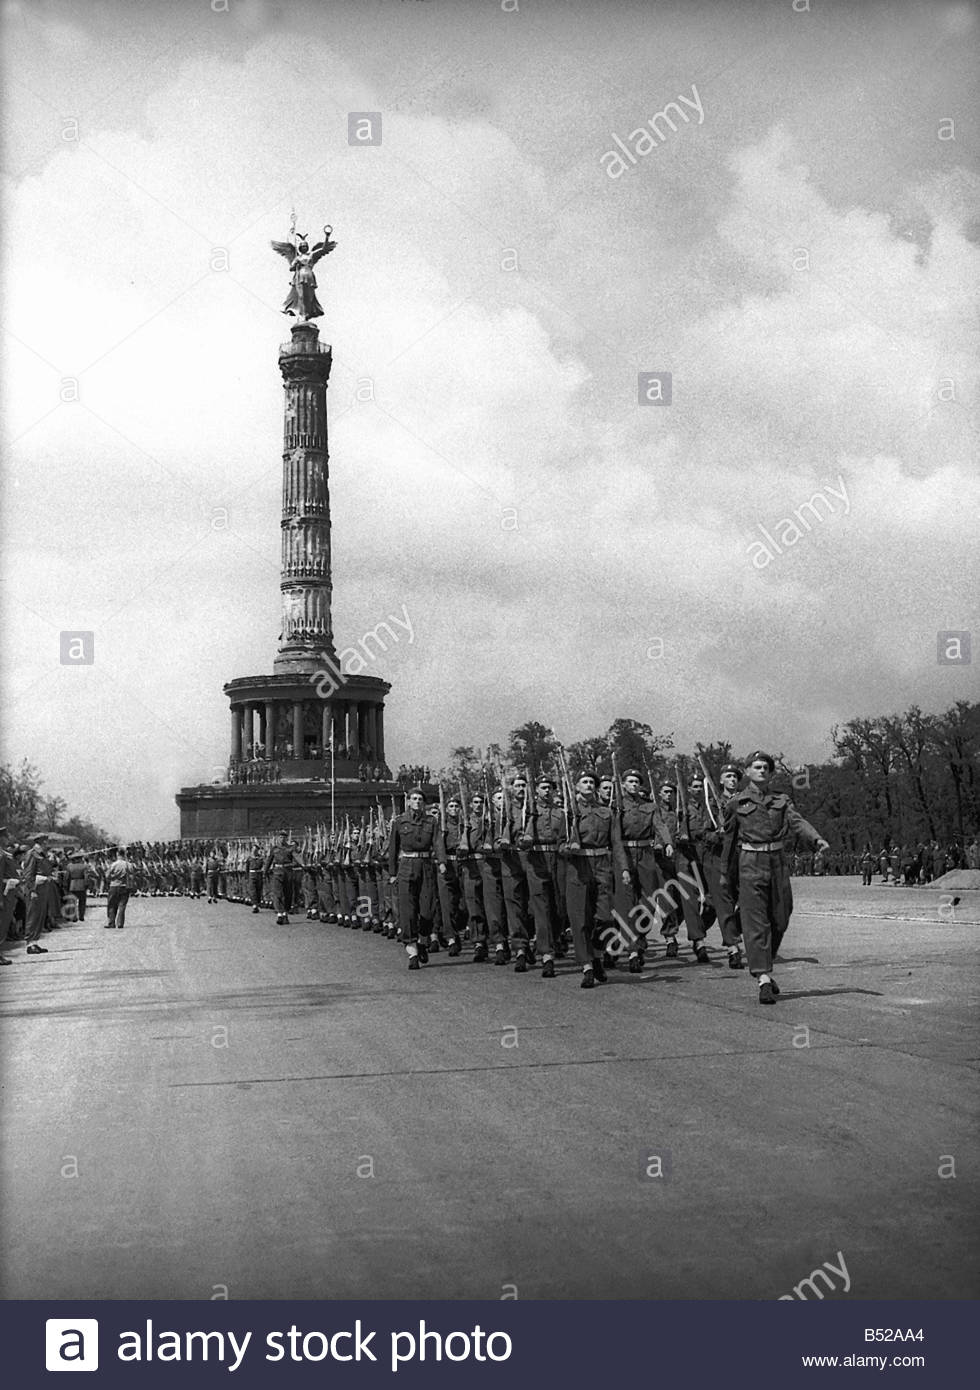 british-army-soldiers-during-a-parade-at-200-ft-sieges-saule-column-B52AA4.jpg